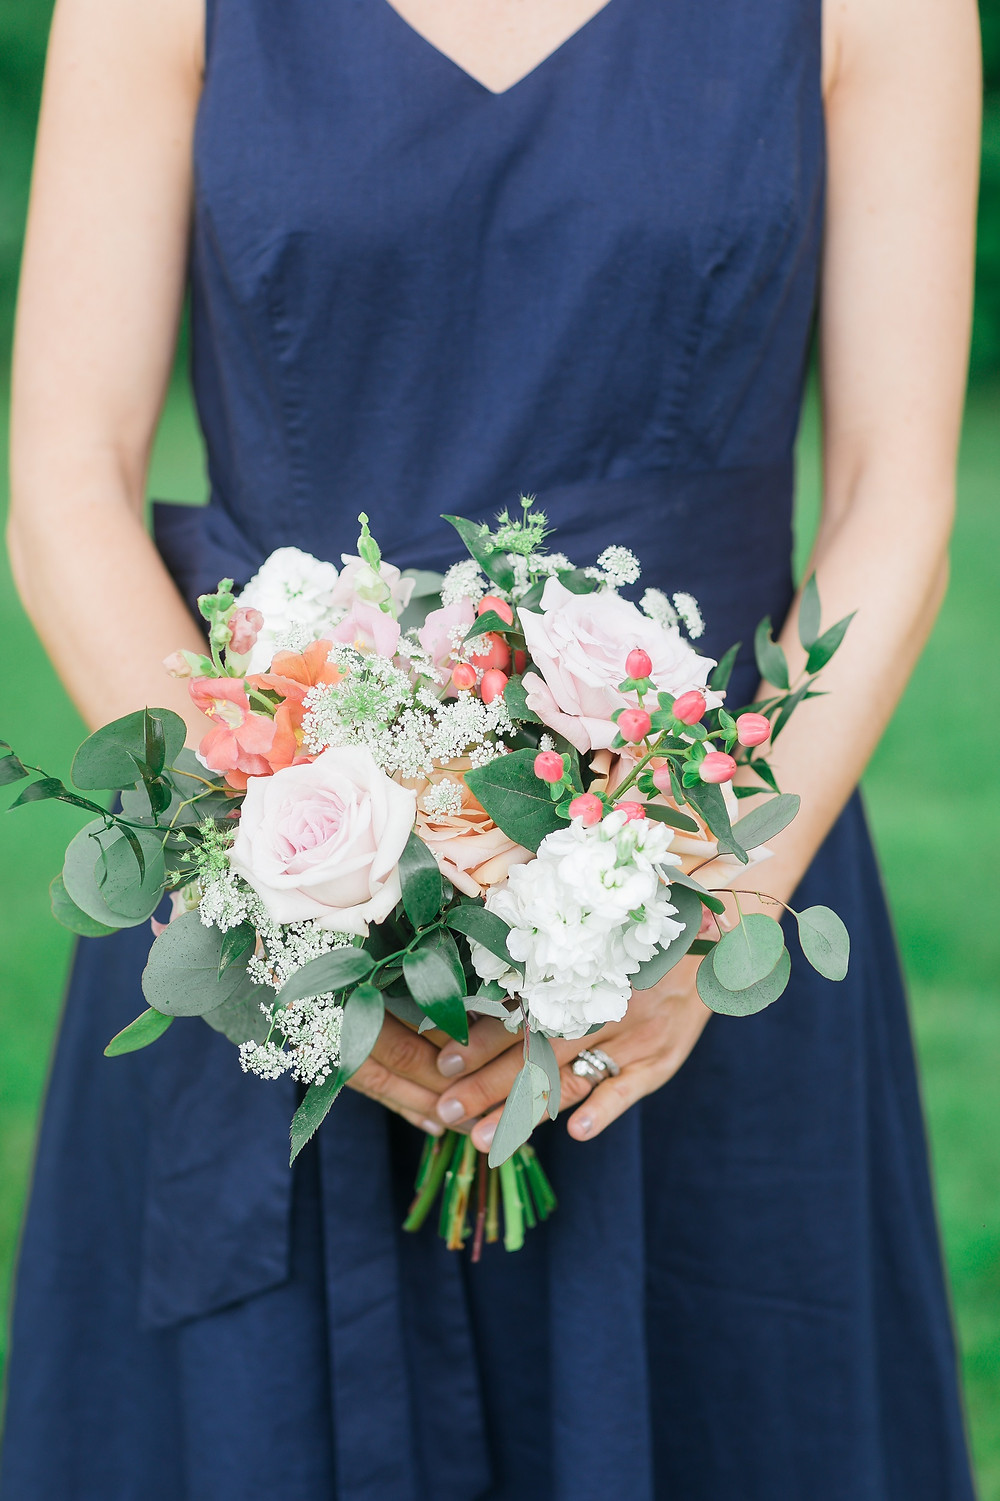 Bridesmaid in navy dress holding Studio Bloom Iowa bouquet in blush and peach with roses, queen annes lace, and berries